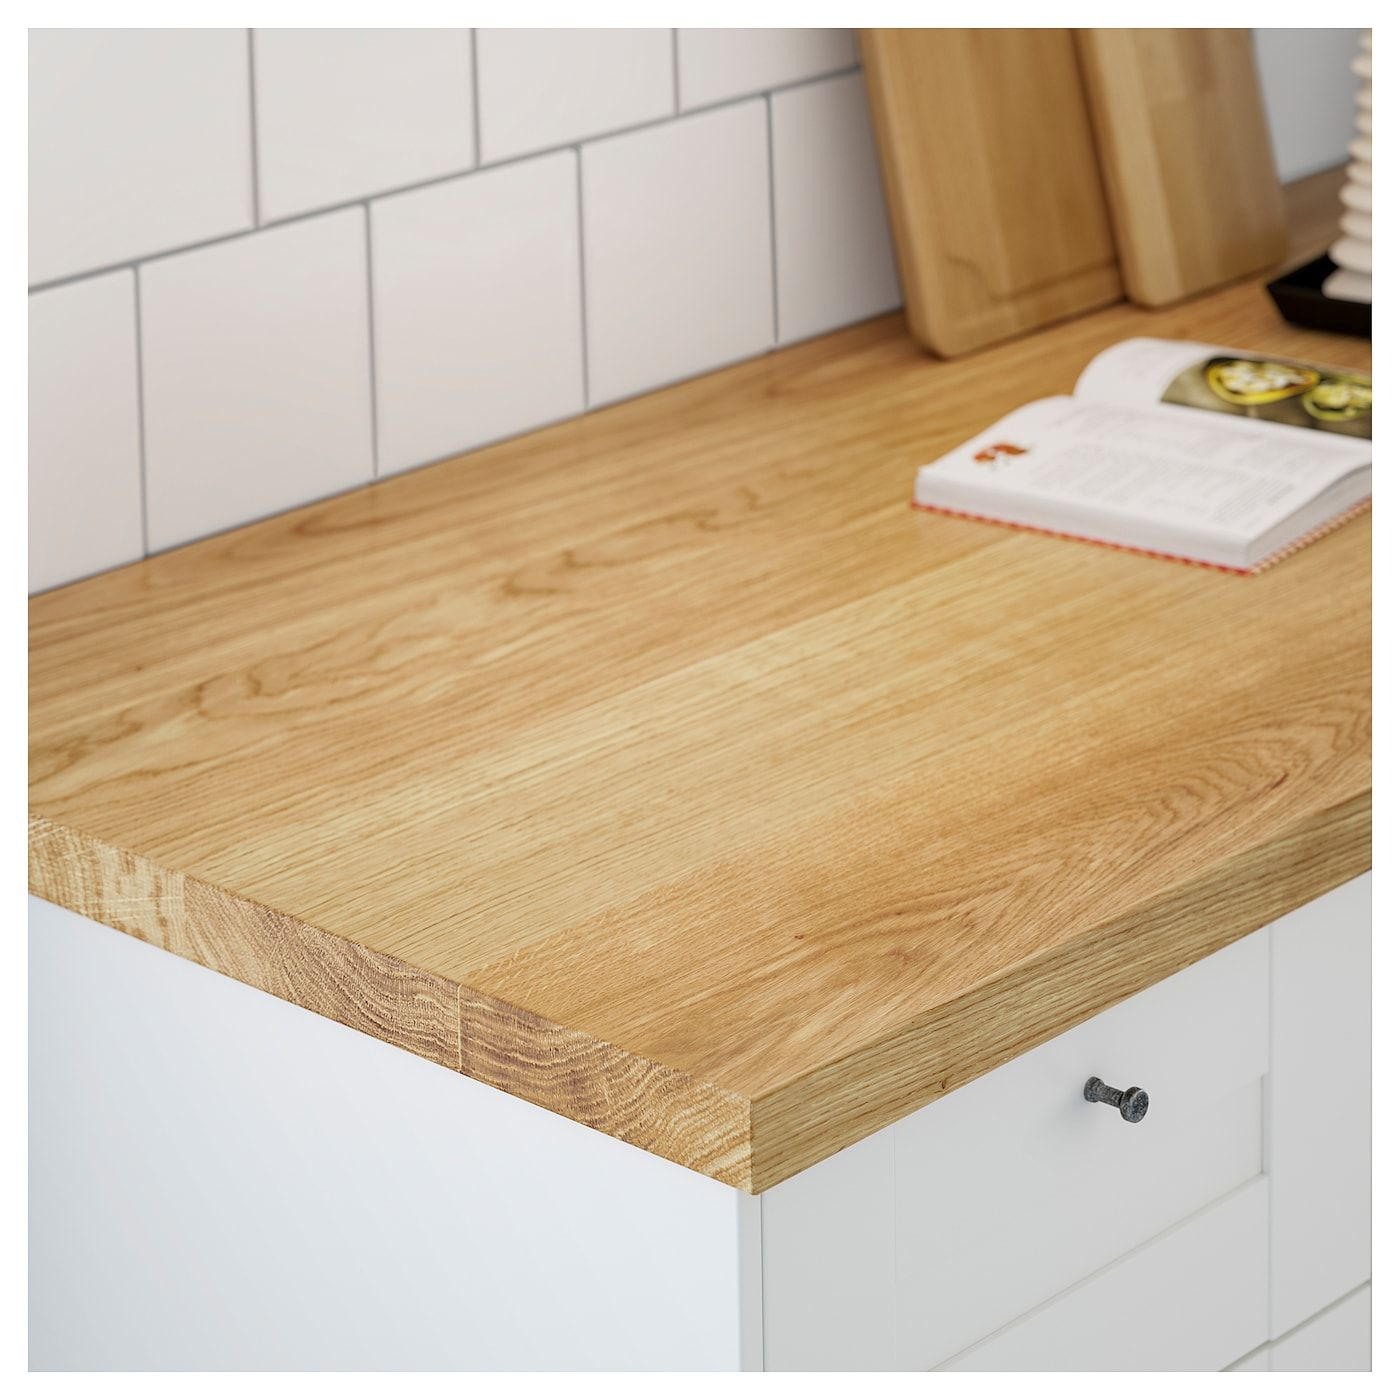 Mollekulla Countertop Oak Veneer 98x1 1 2 In 2020 Countertops Ikea Wood Countertops Solid Countertops